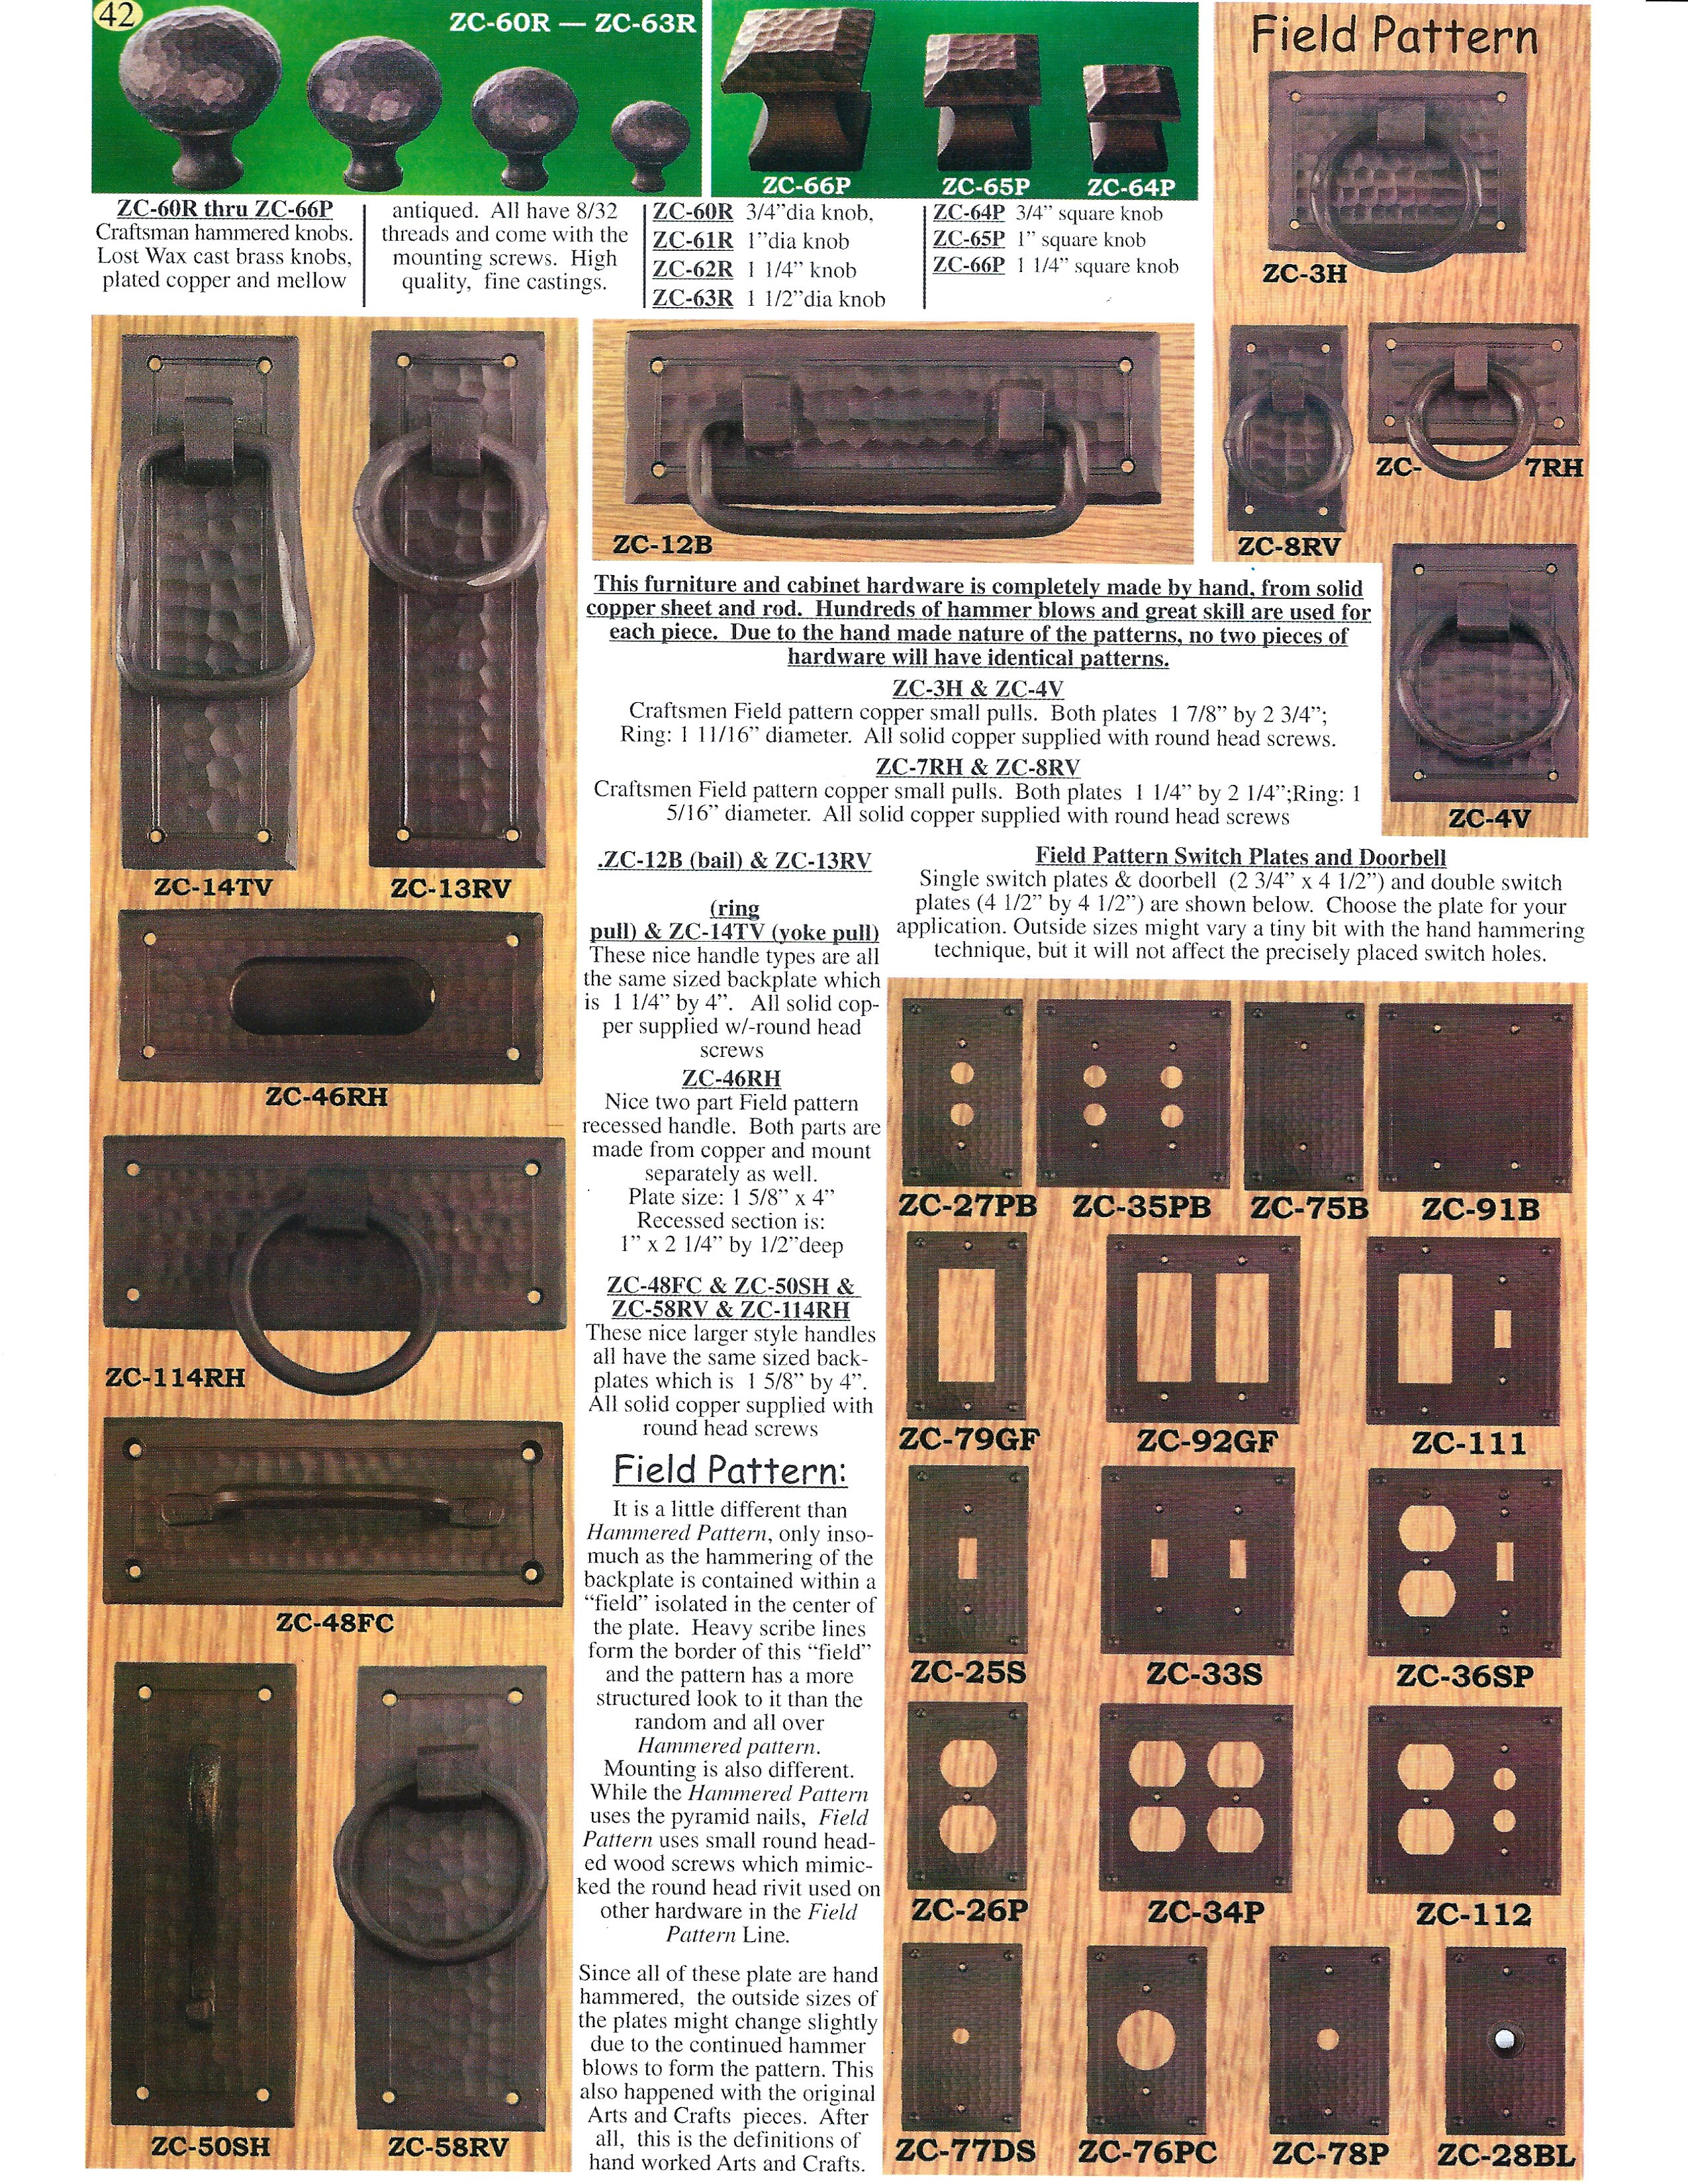 Catalog page 66